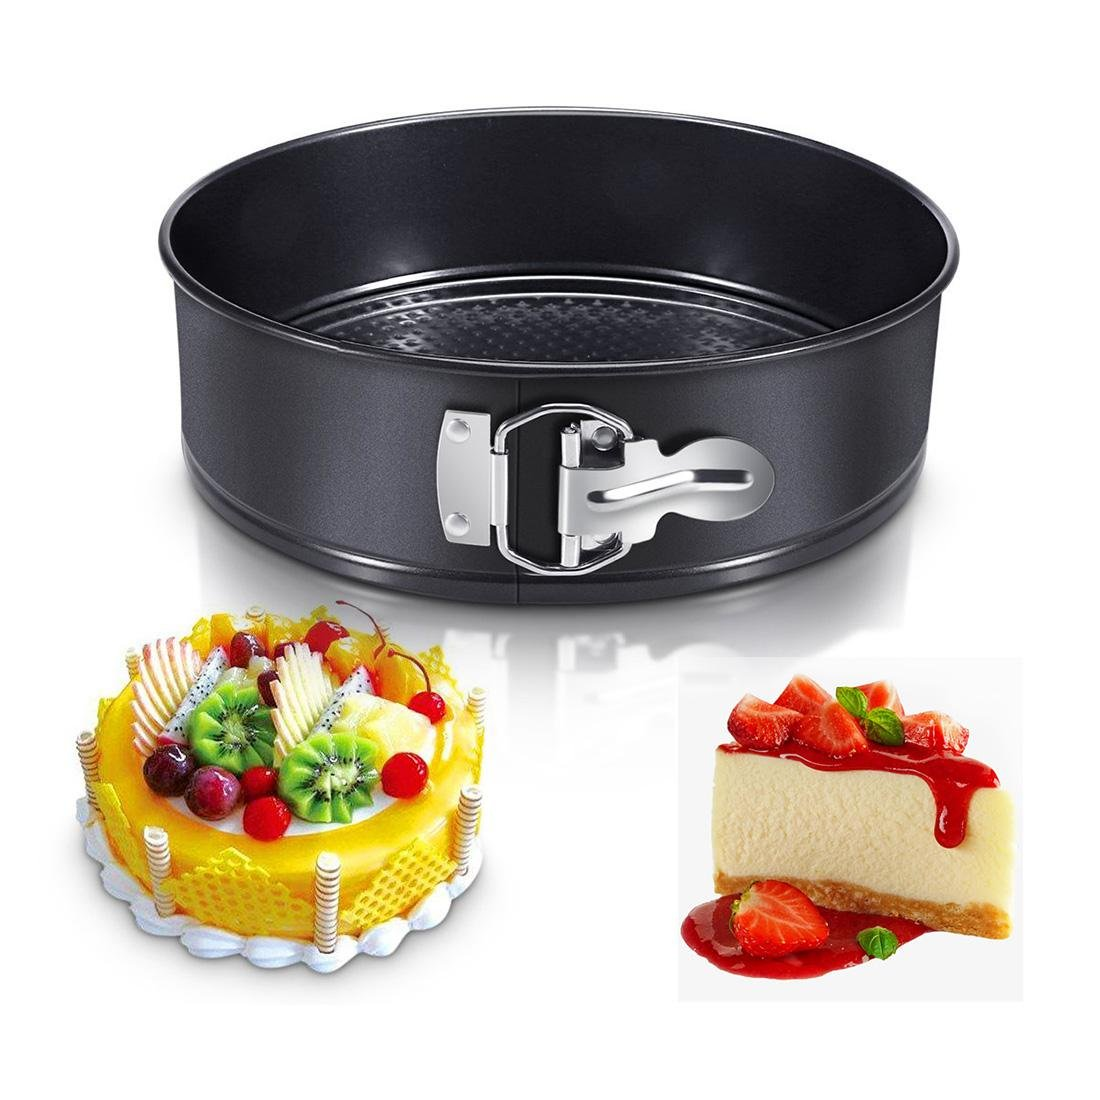 9inch Springform Pan, Aolvo Non-stick Cheesecake Pan Springform Pan with Removable Bottom, Leakproof Cake Pan Bakeware